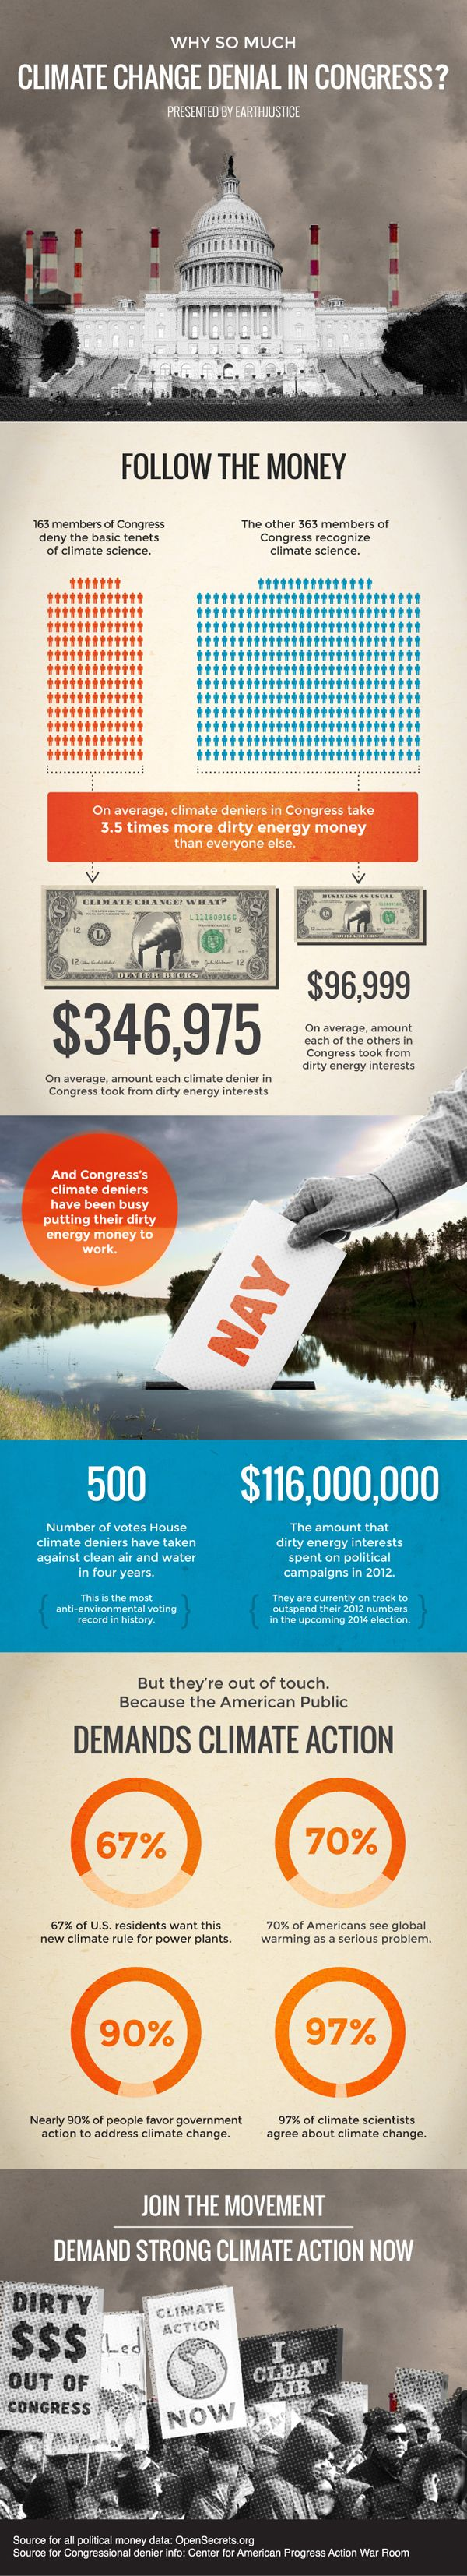 Why so much climate change denial in Congress? Follow the Money.